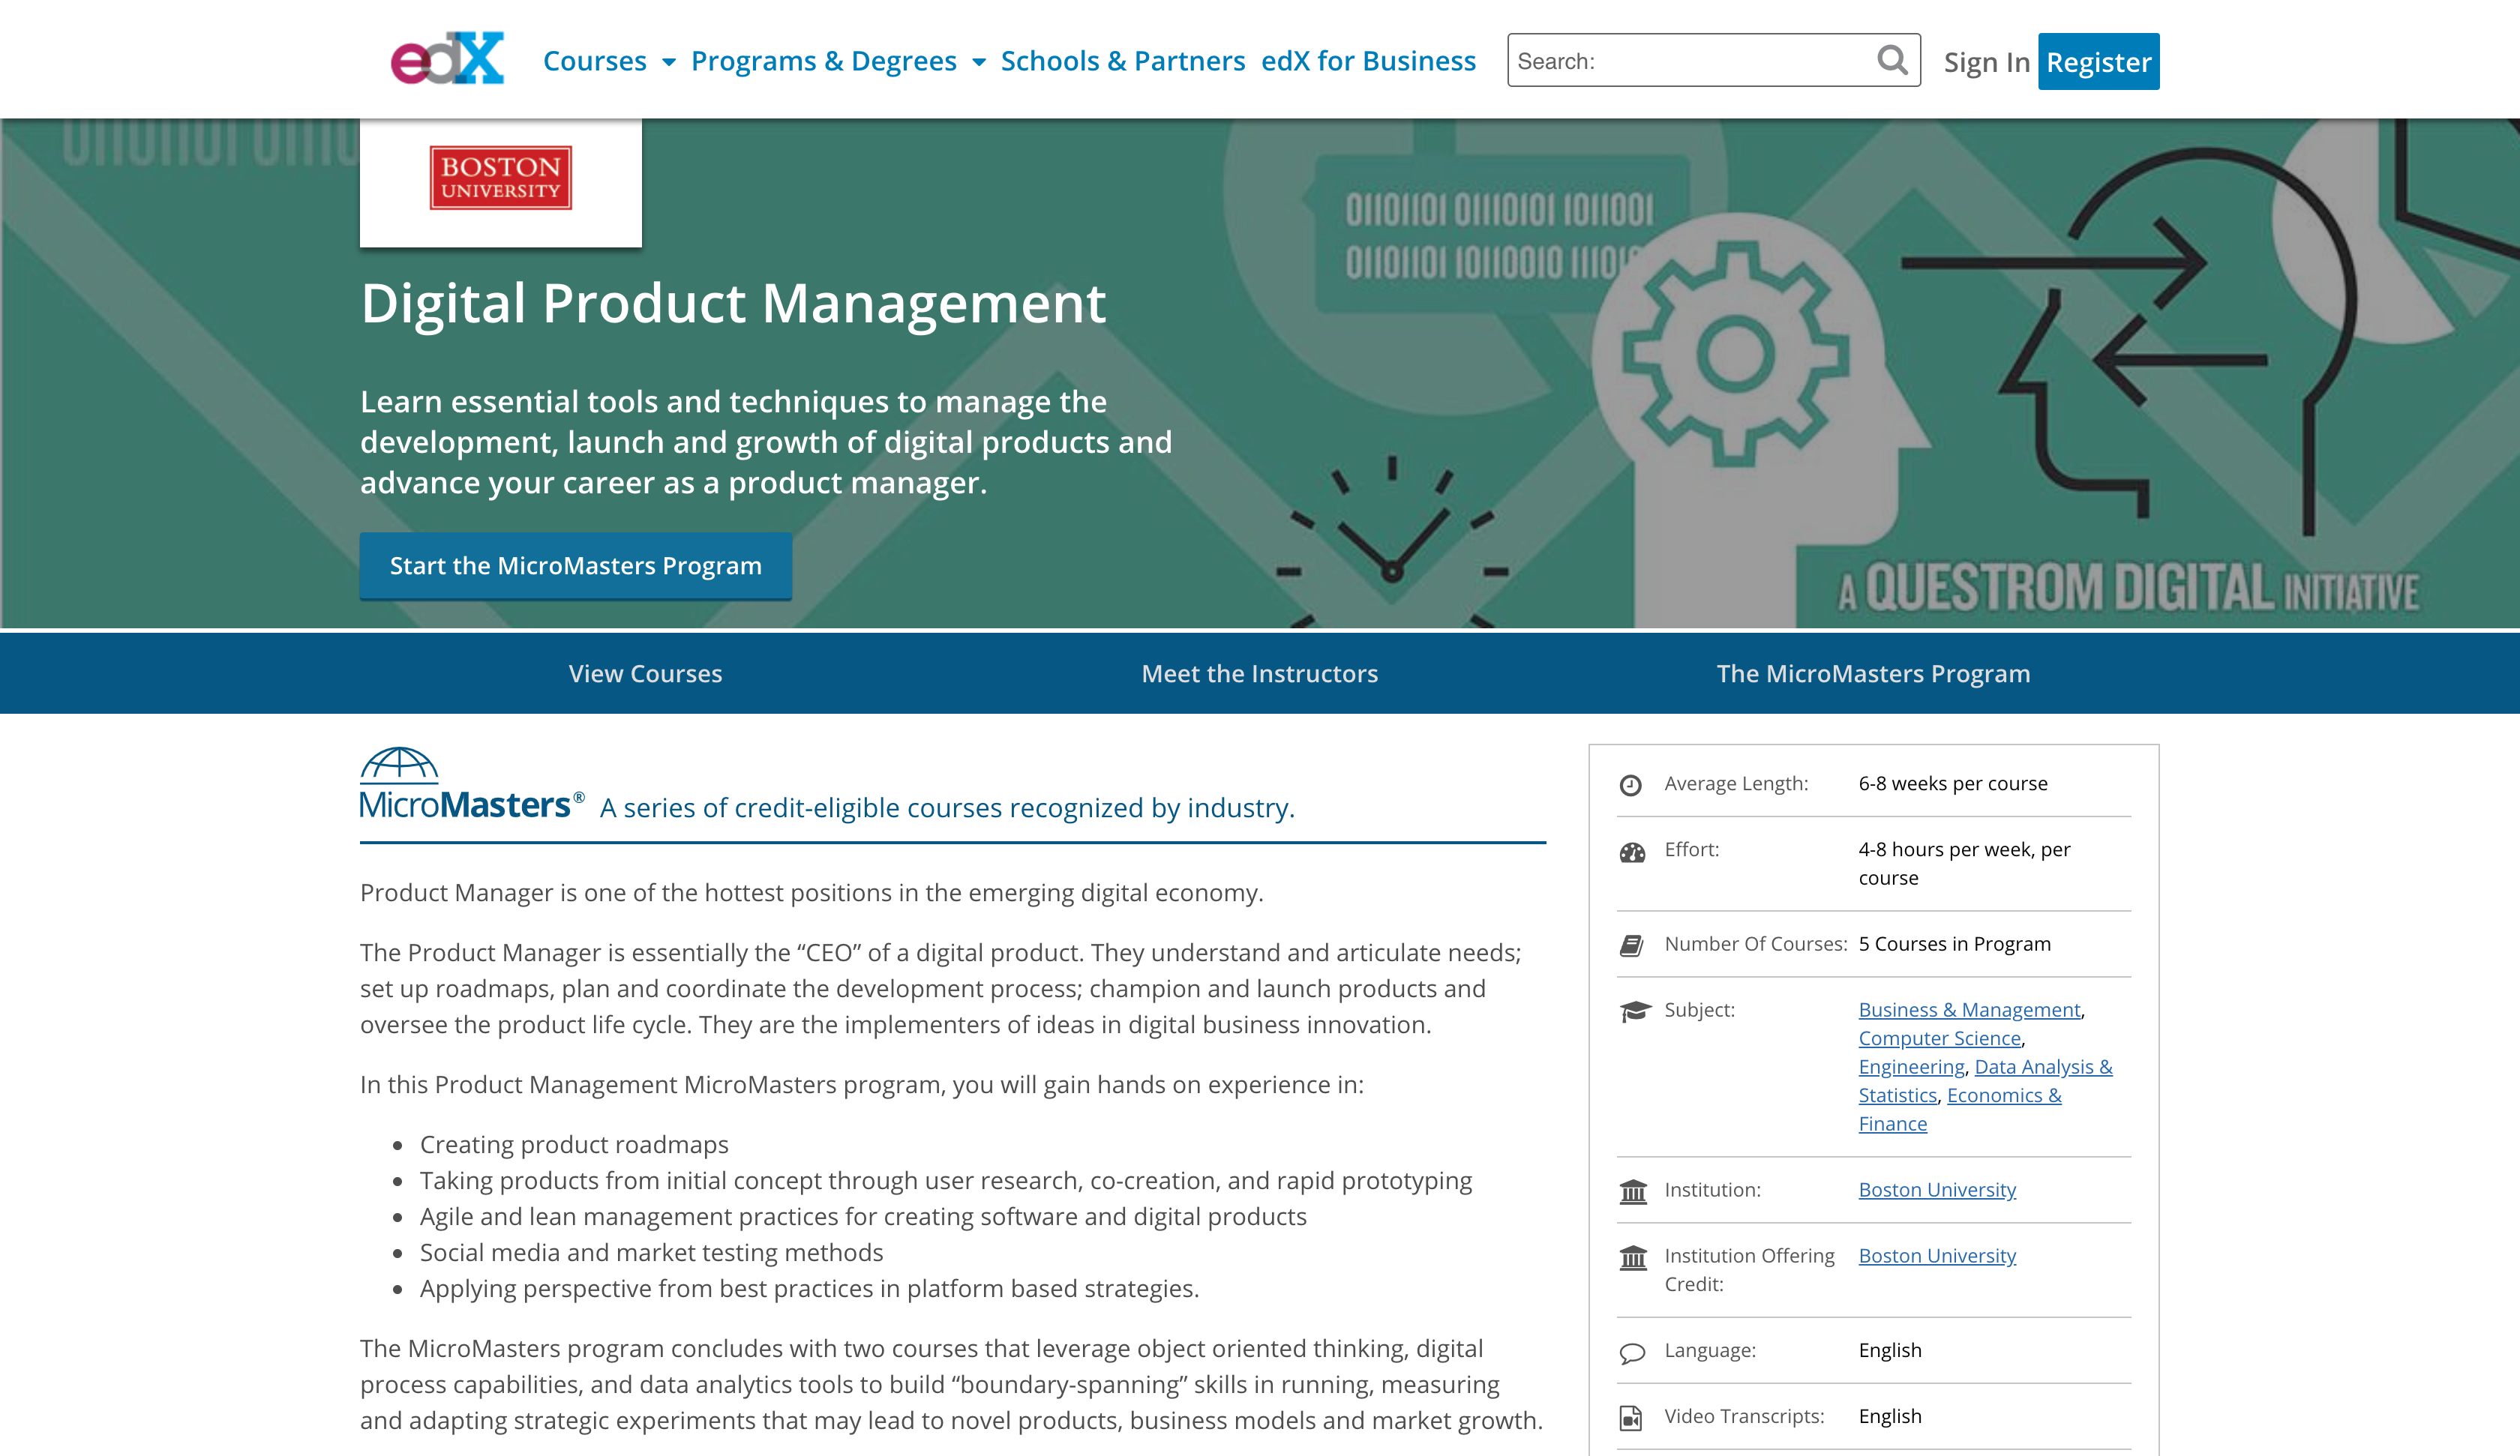 Digital Product Management Certification by Boston University